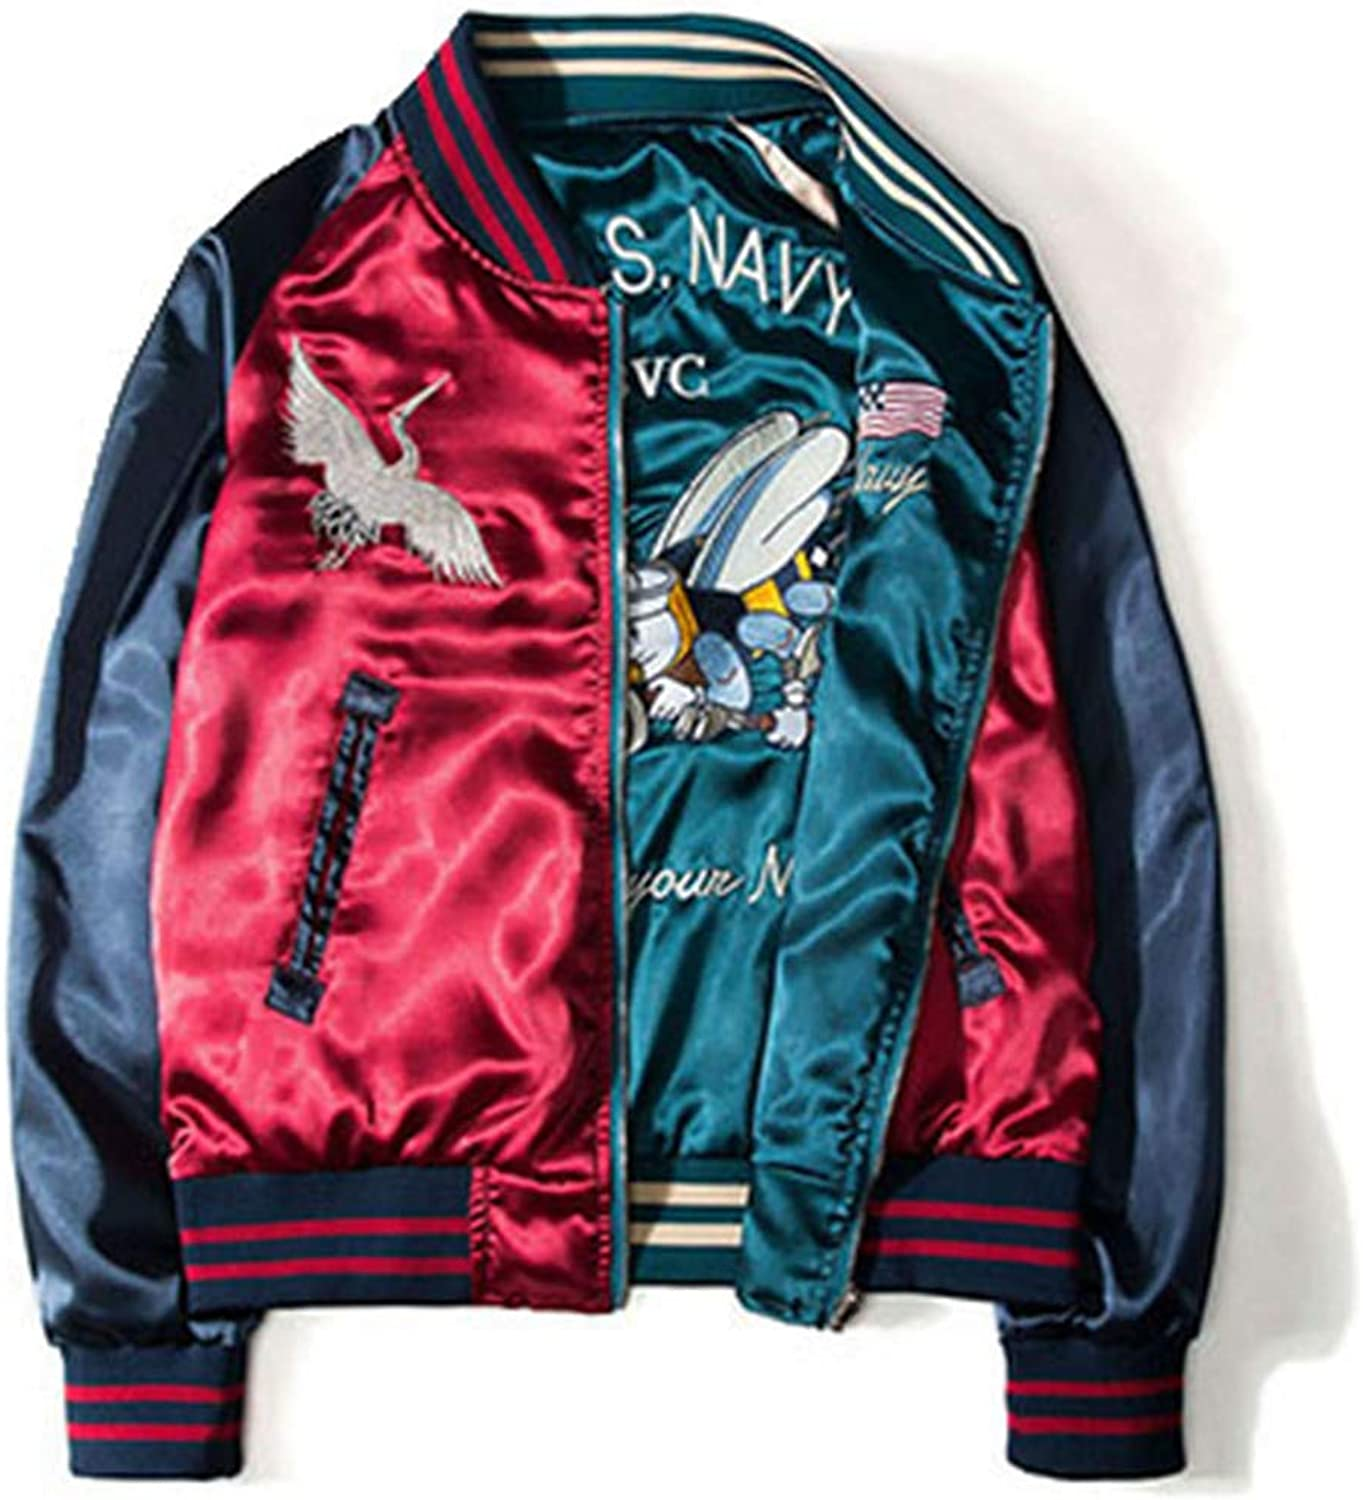 BACHDLS Spring Women's Buttoned Casual Boyfriend Embroidered Jacket and Jacket